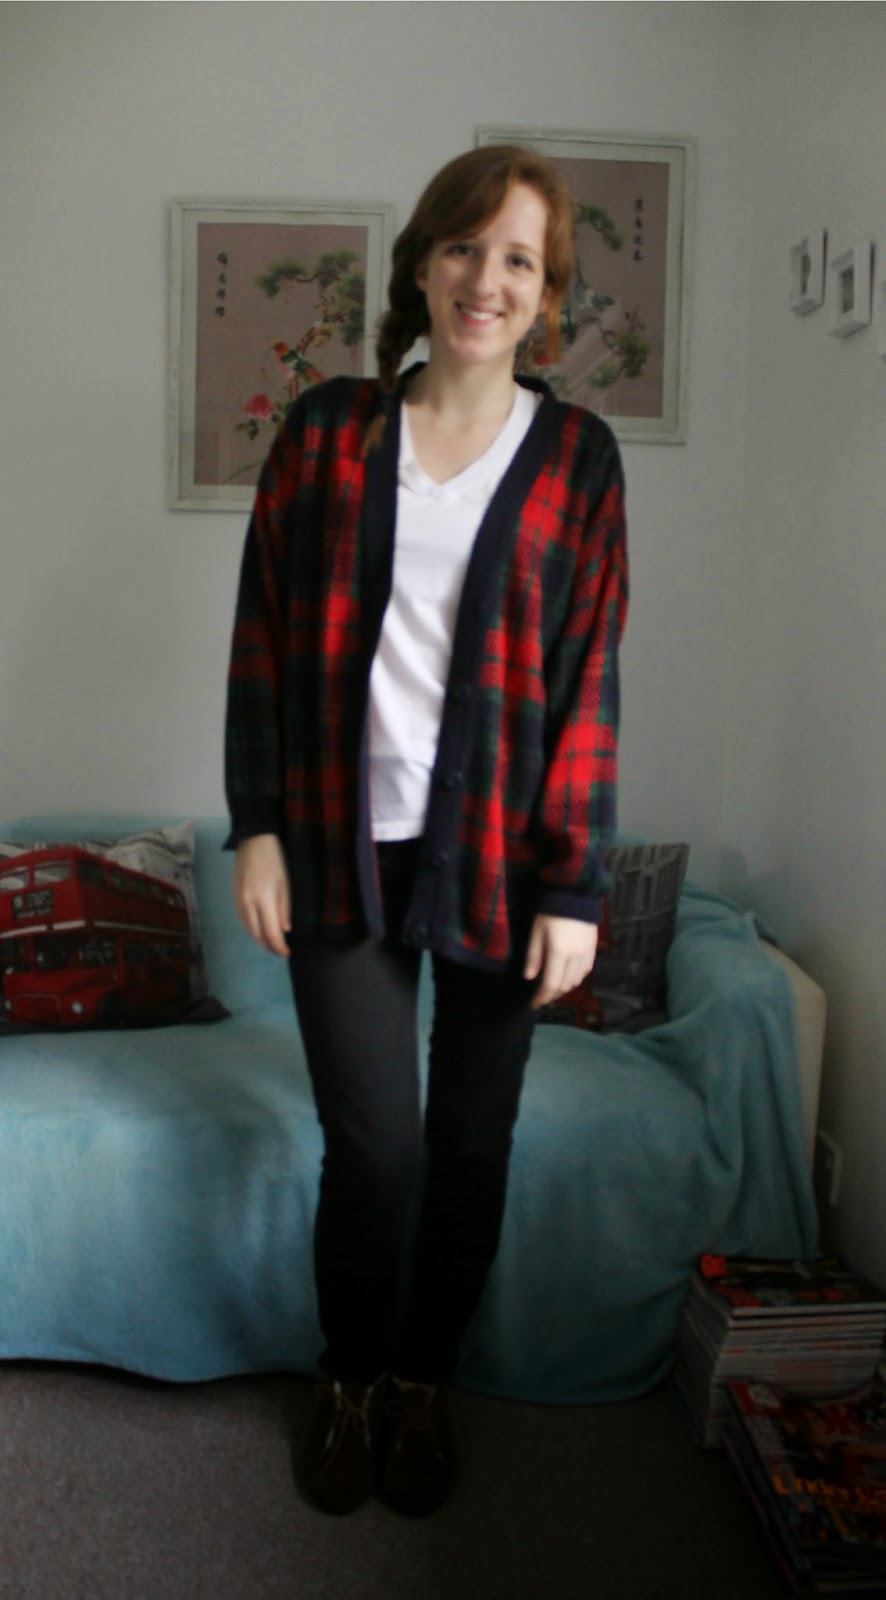 OOTD: Fluffy Coat and Tartan Cardigan